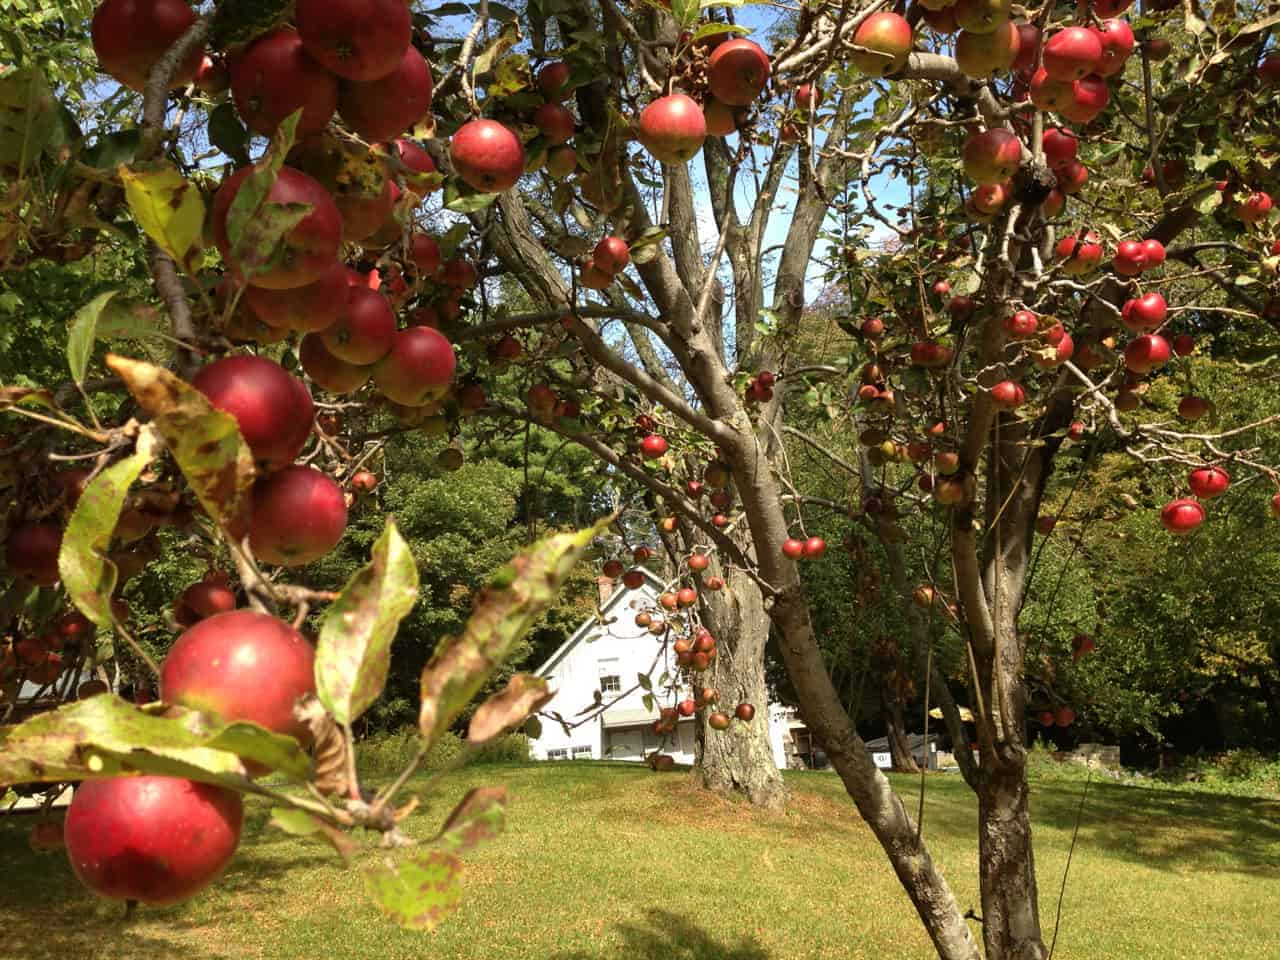 The trees by the picnic tables burst with apples. Photo by Kate Abbott